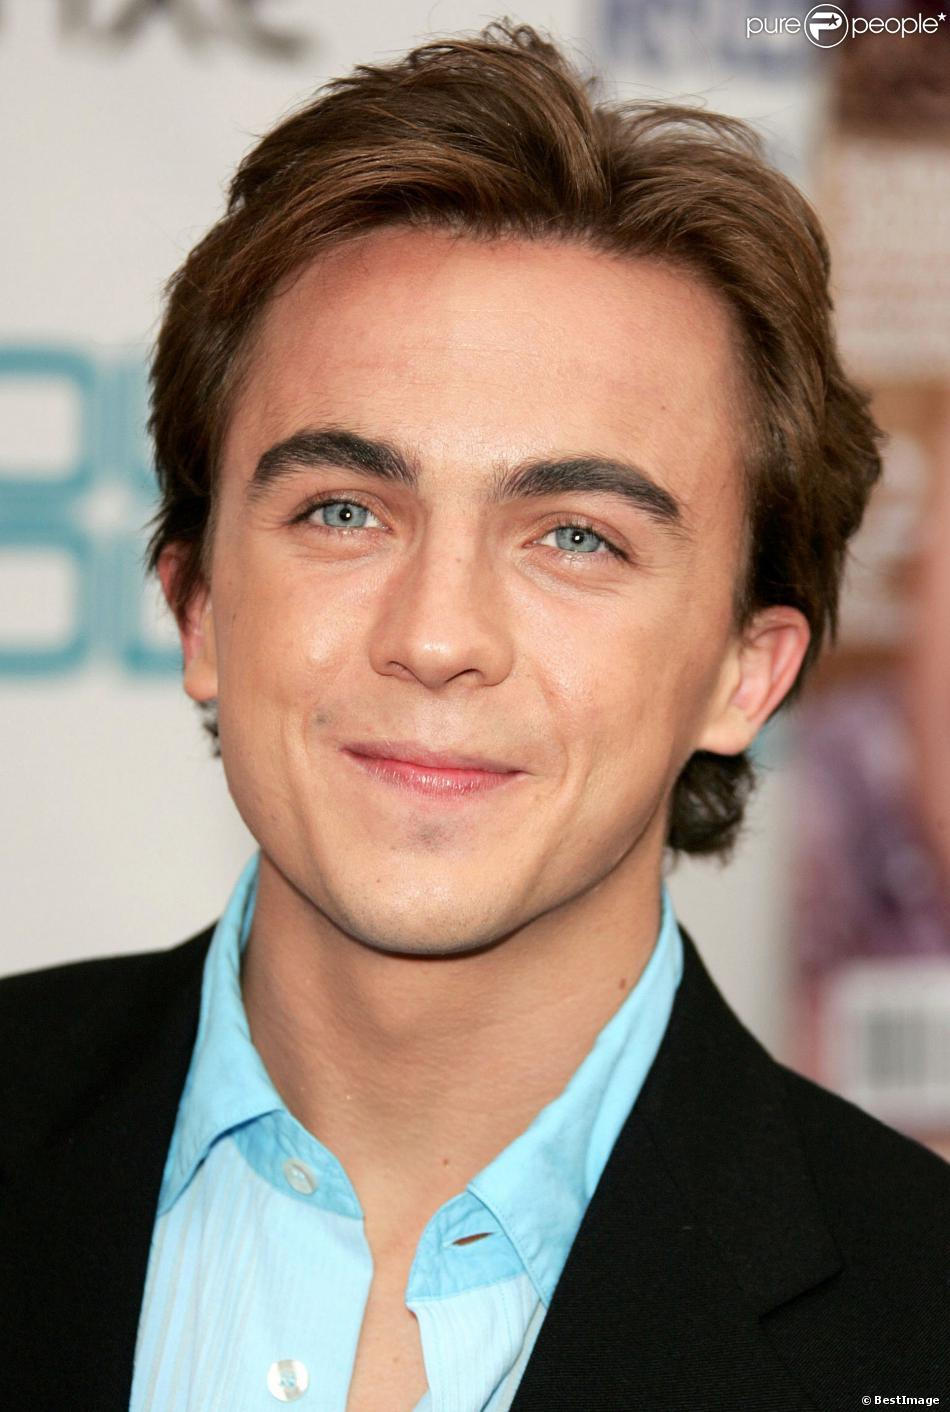 frankie muniz toyotafrankie muniz 2016, frankie muniz height, frankie muniz 2017, frankie muniz twitter, frankie muniz imdb, frankie muniz 2005, frankie muniz 2015, frankie muniz toyota, frankie muniz auto, frankie muniz net worth, frankie muniz clippers, frankie muniz movie, frankie muniz instagram, frankie muniz reddit ama, frankie muniz bryan cranston, frankie muniz wife, frankie muniz malcolm in the middle, frankie muniz aaron paul